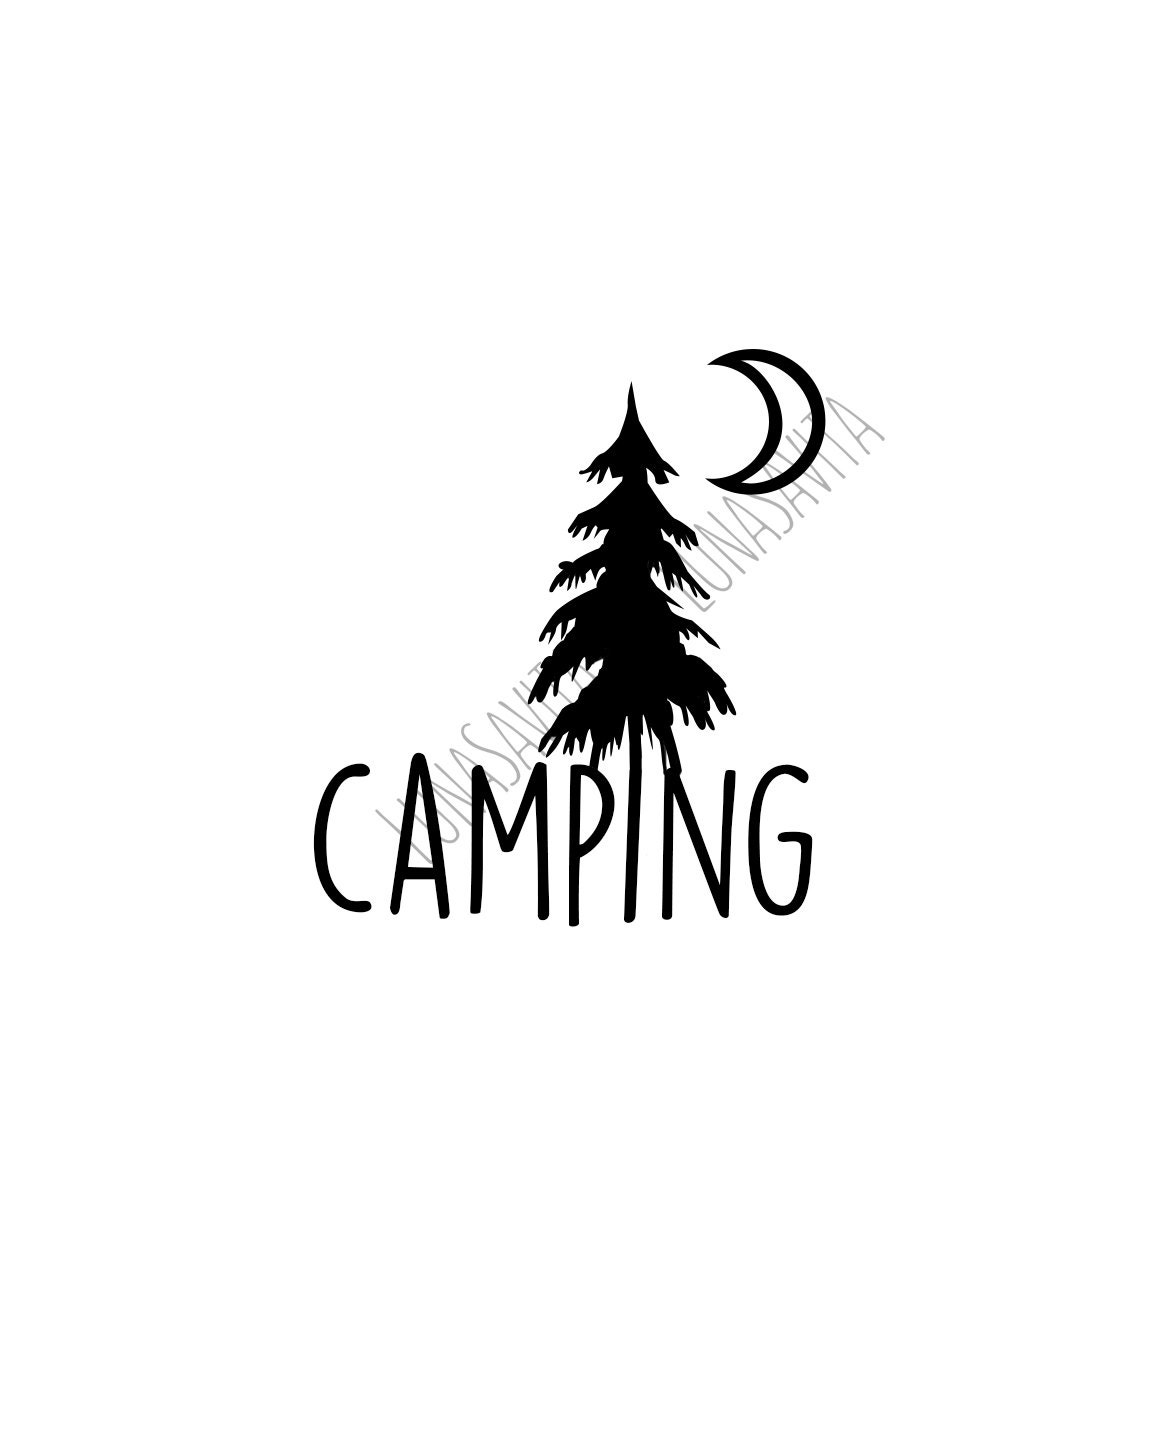 Camping Svg Dxf Files For Cricut Design Space Silhouette